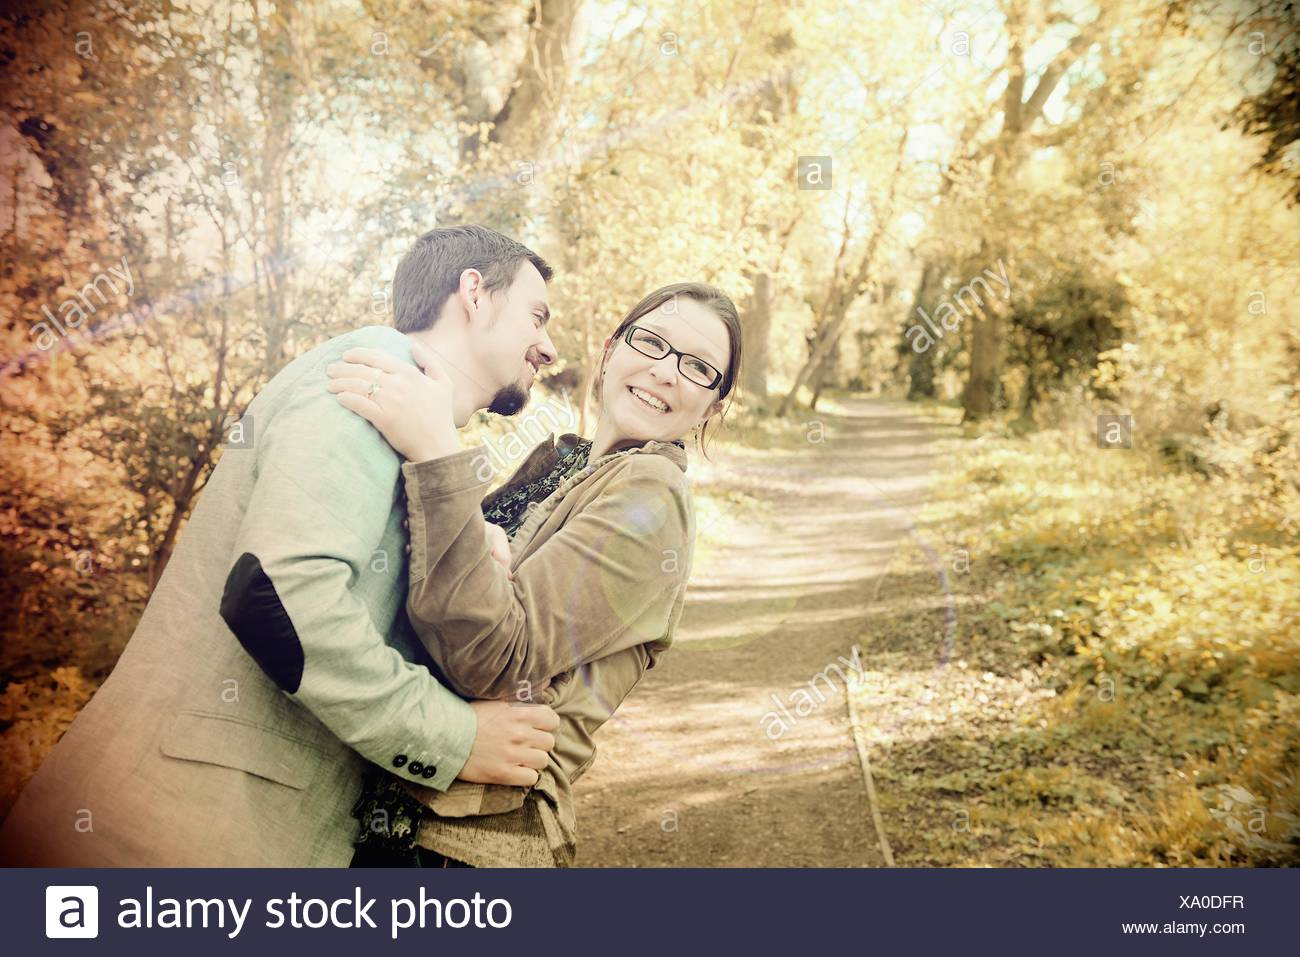 Lovers embracing outdoors - Stock Image